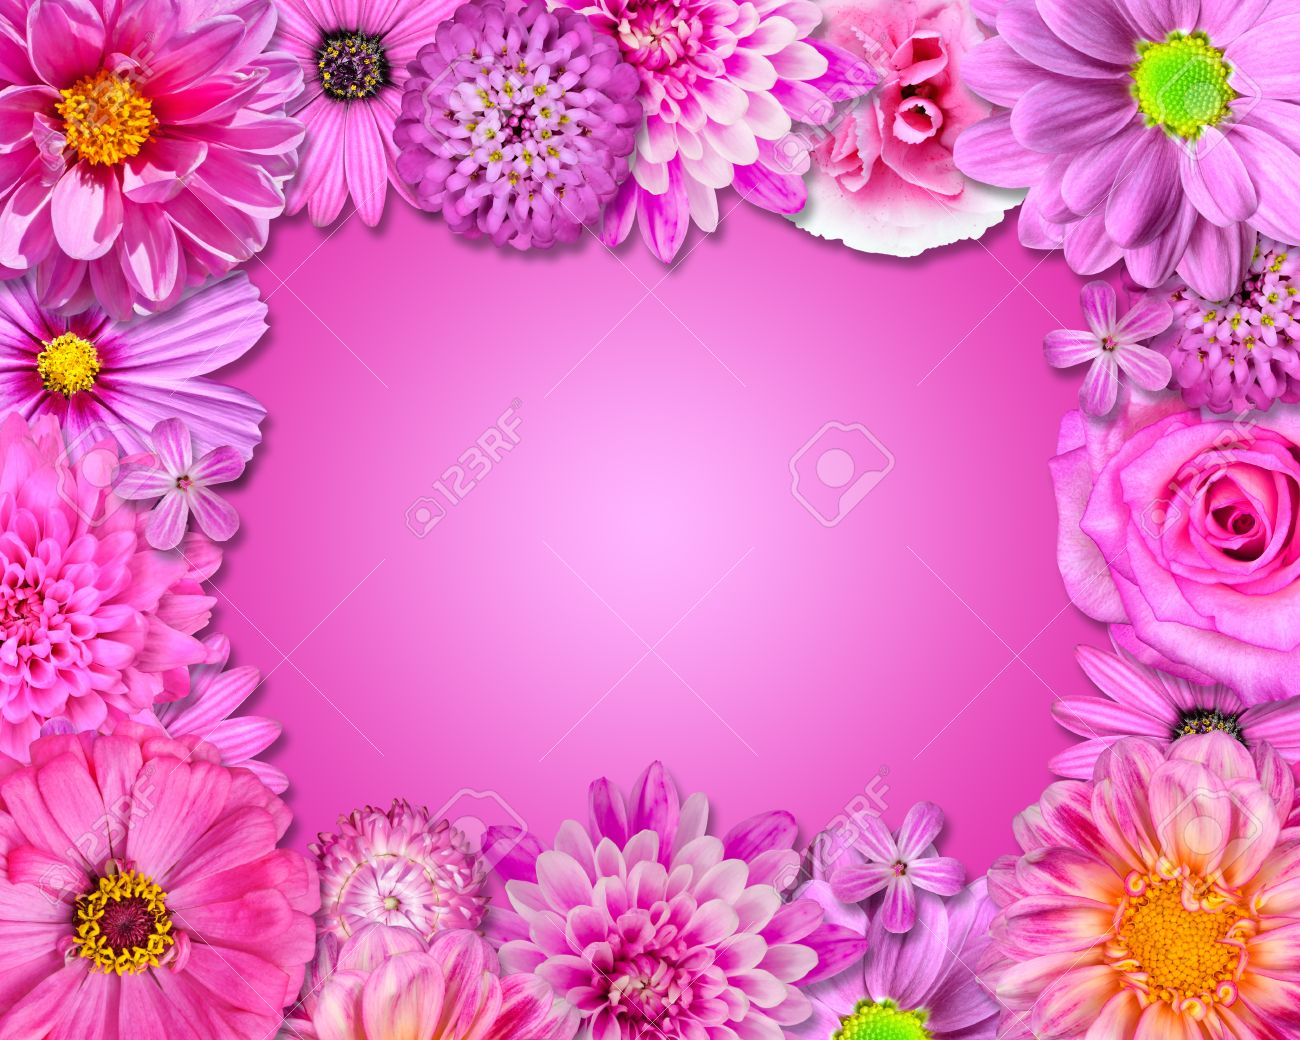 Flower Frame With Pink Purple Flowers Isolated On Pink Background